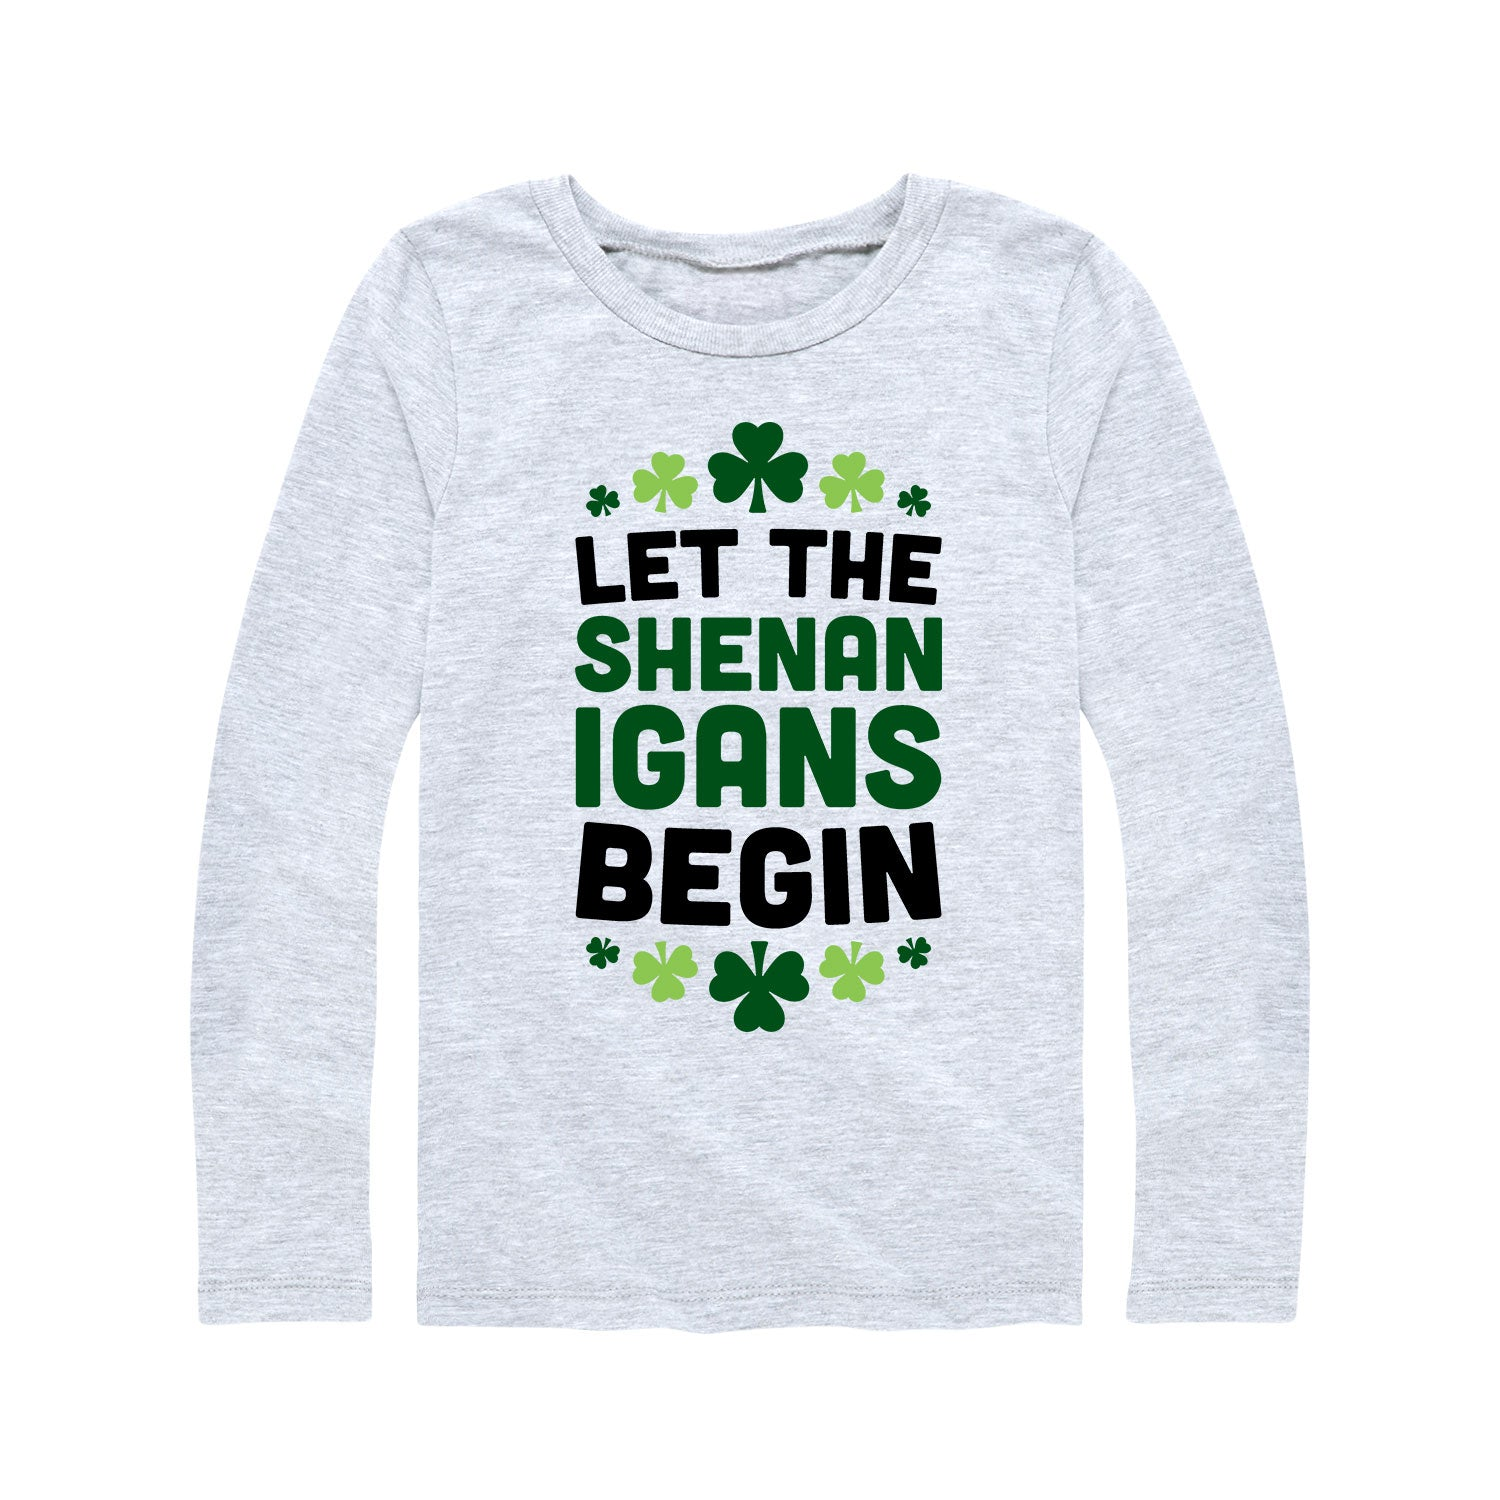 Let The Shenanigans Begin - Youth Girl Long Sleeve T-Shirt